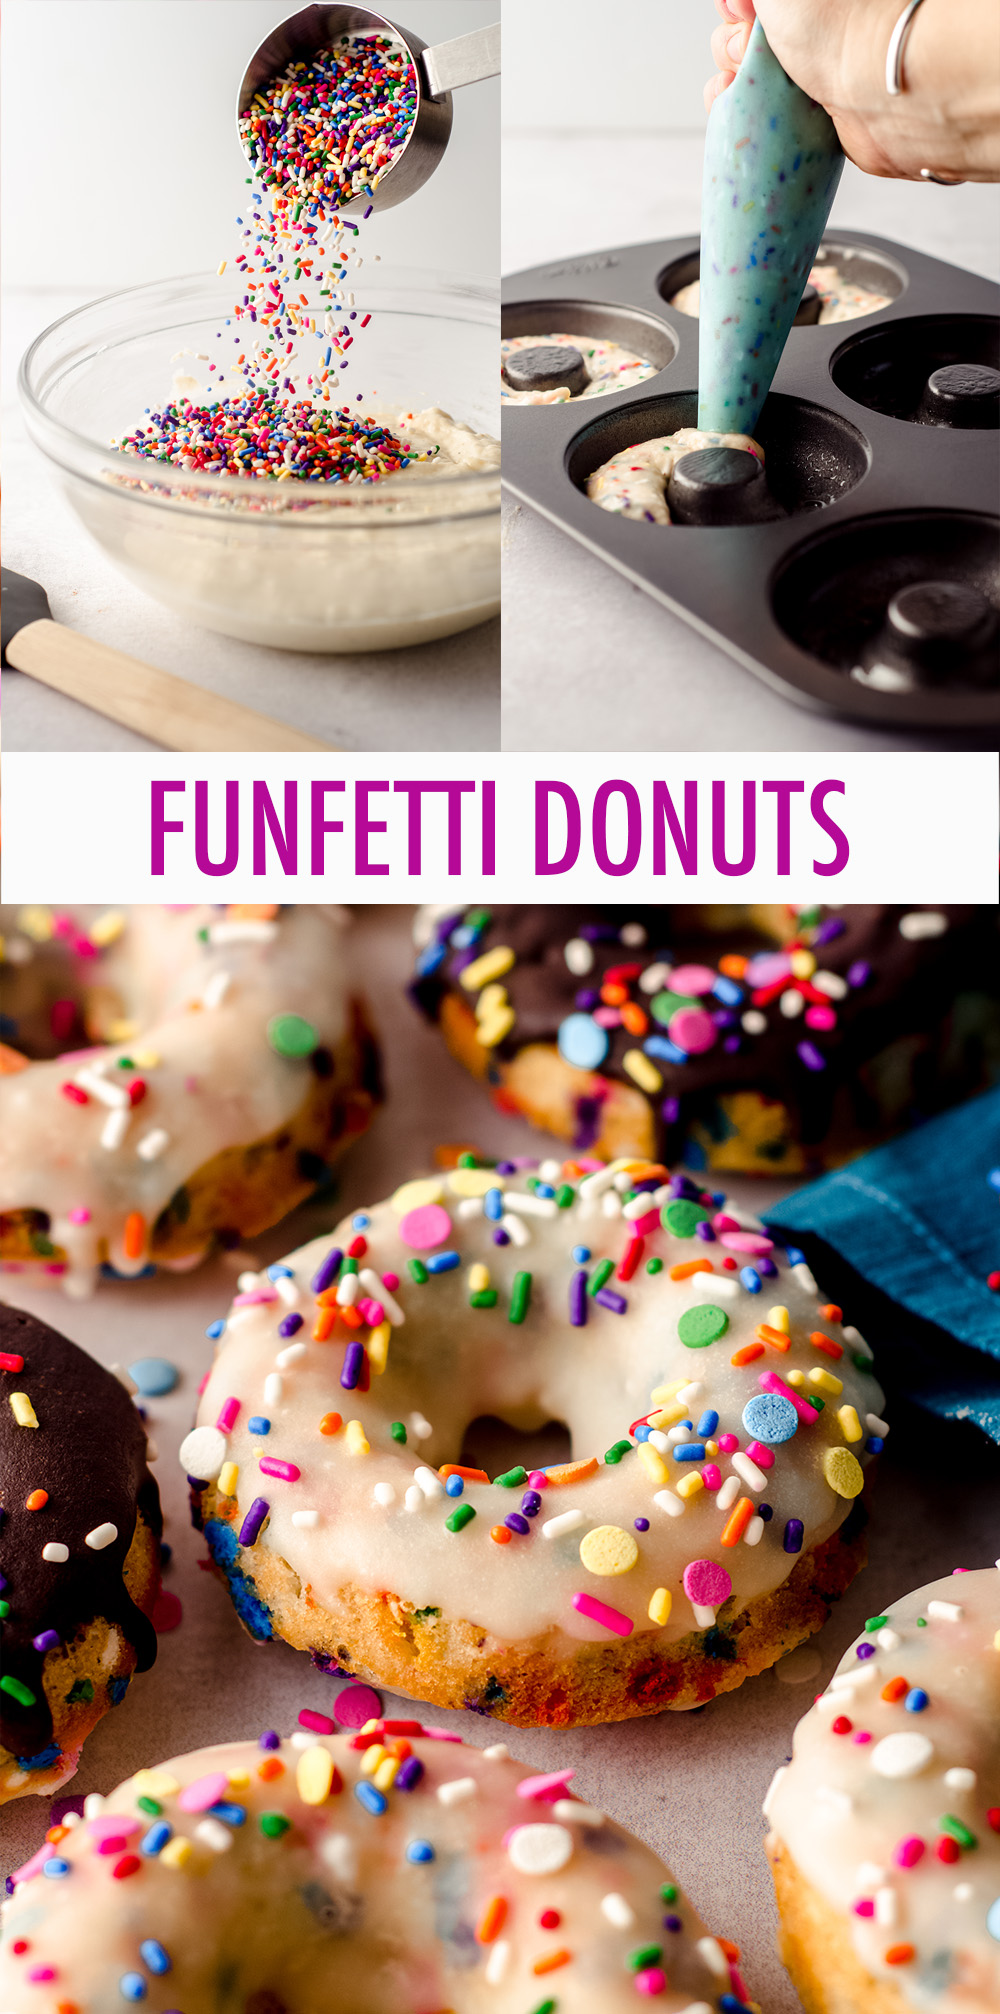 Baked and not fried cake donuts filled with sprinkles and topped with a simple vanilla or chocolate glaze.